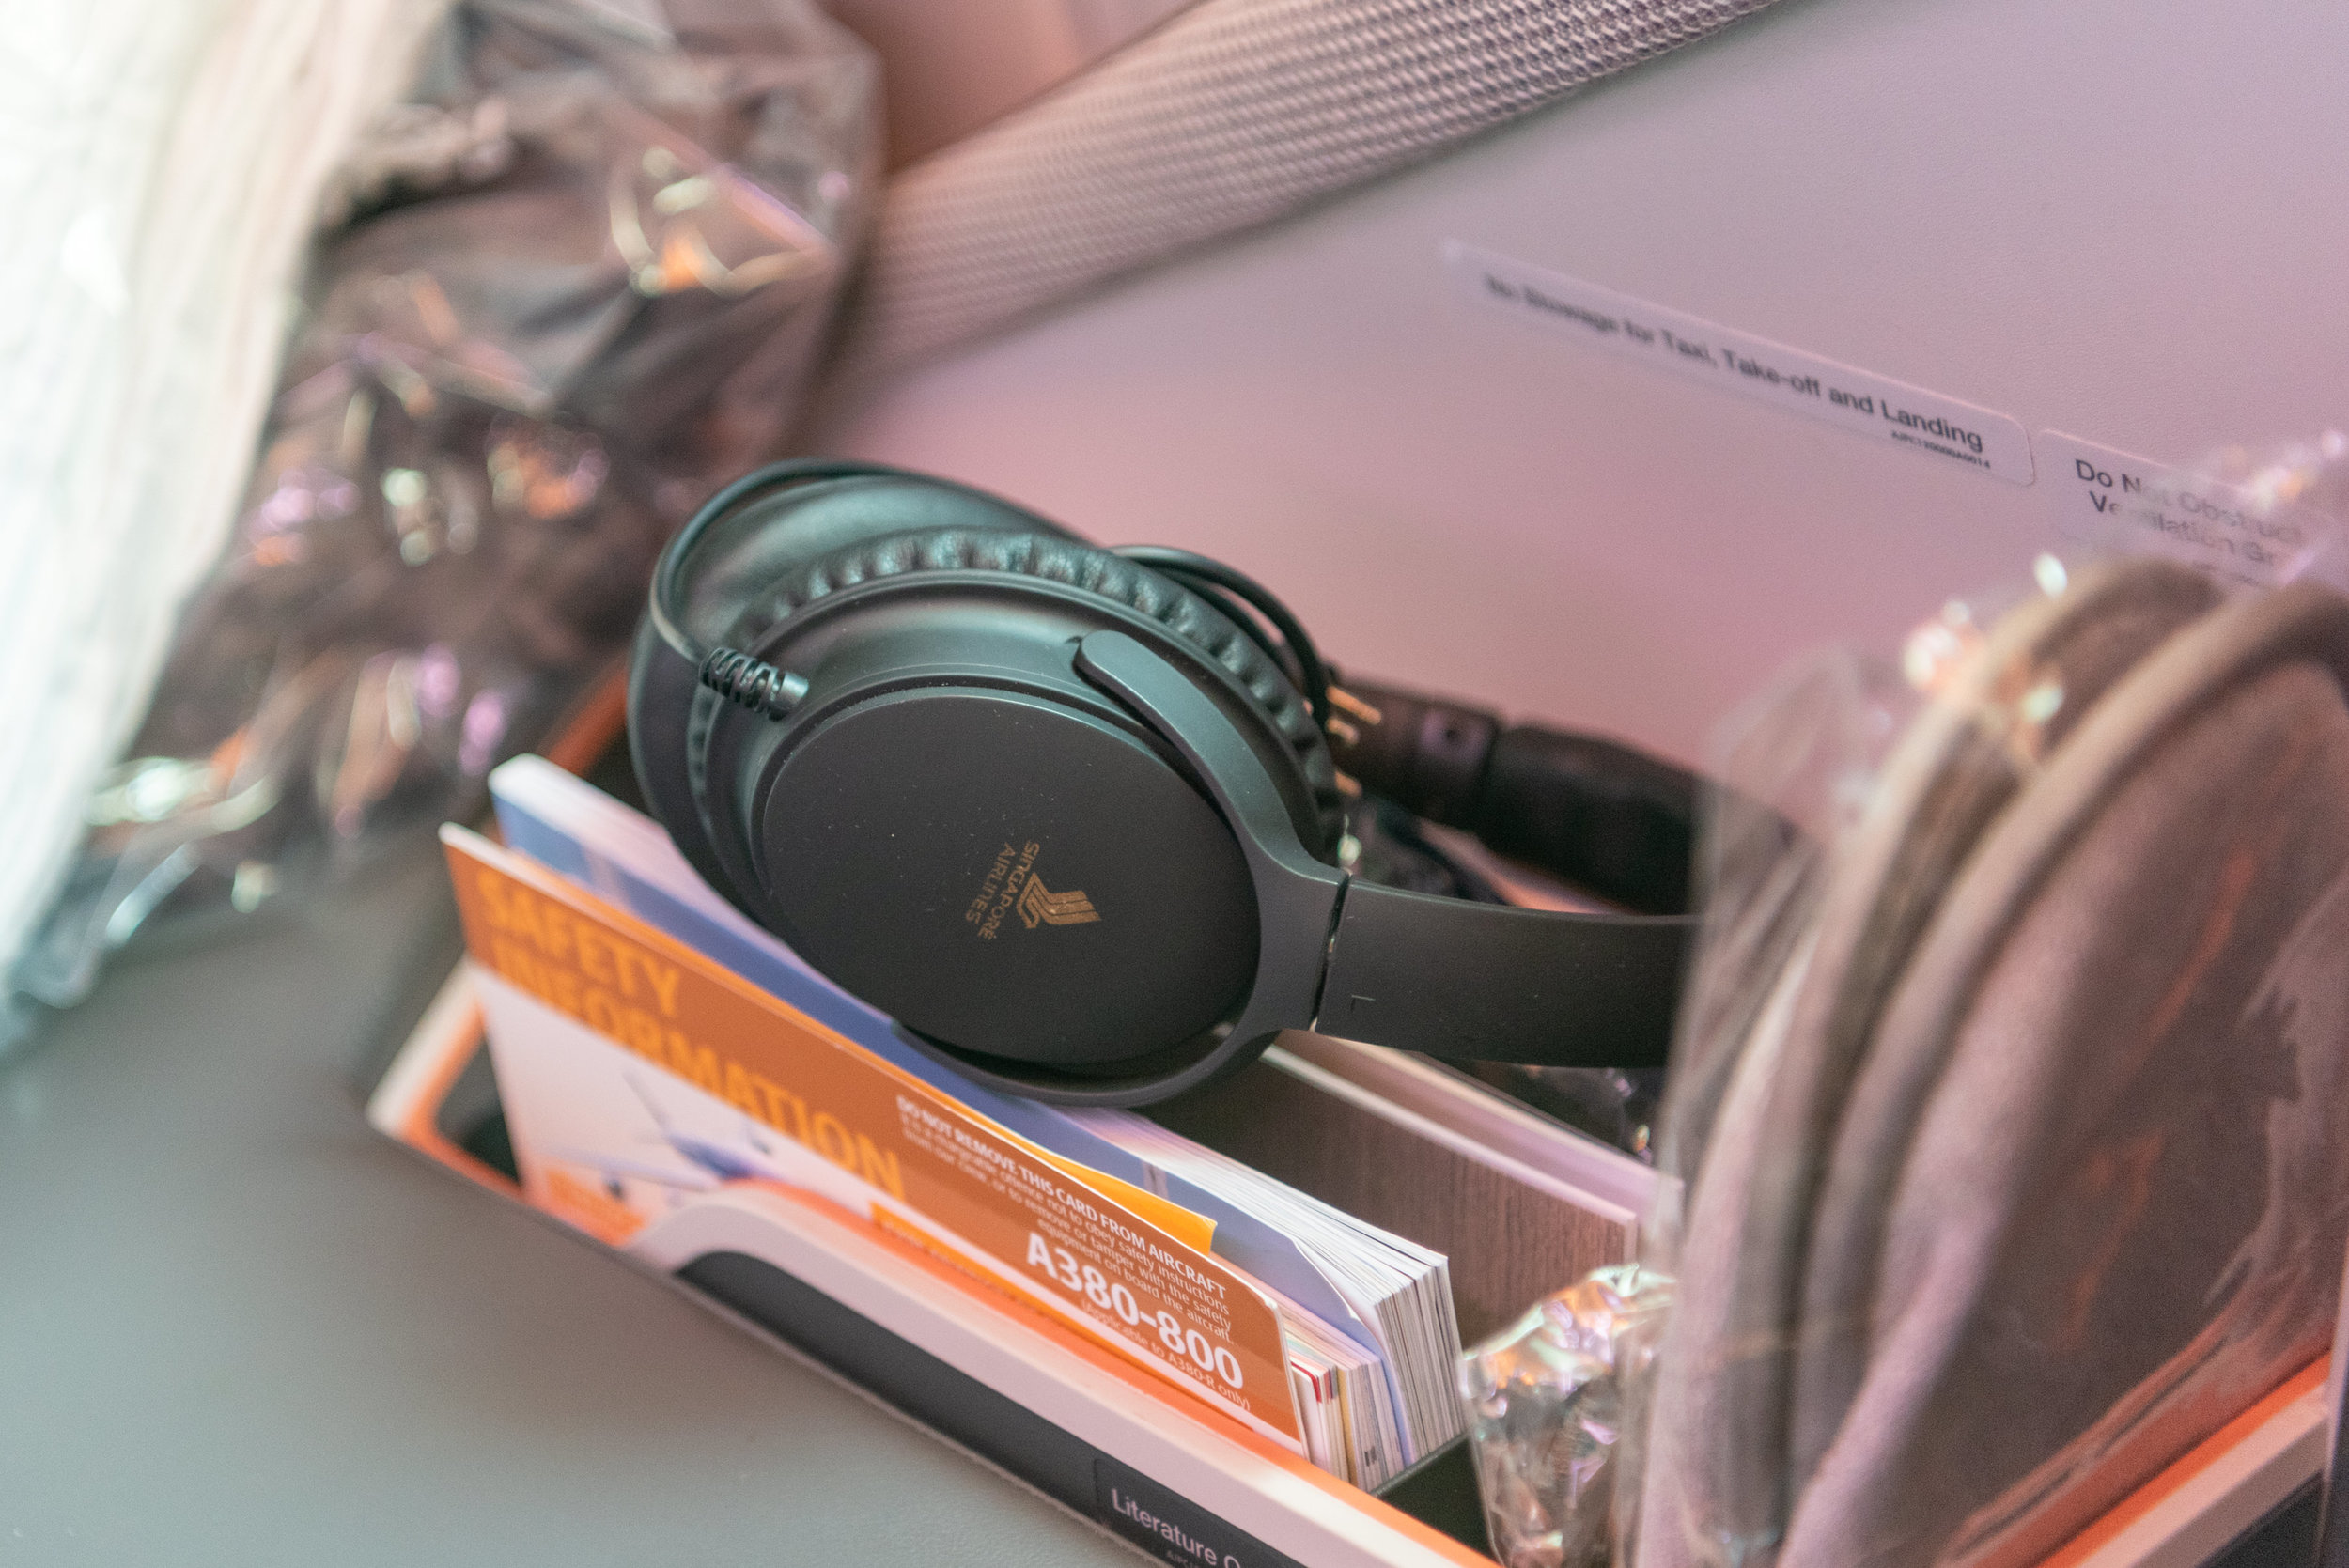 Noise-cancelling Headphones  Singapore Airlines Business Class SQ833 A380-800 - PVG to SIN